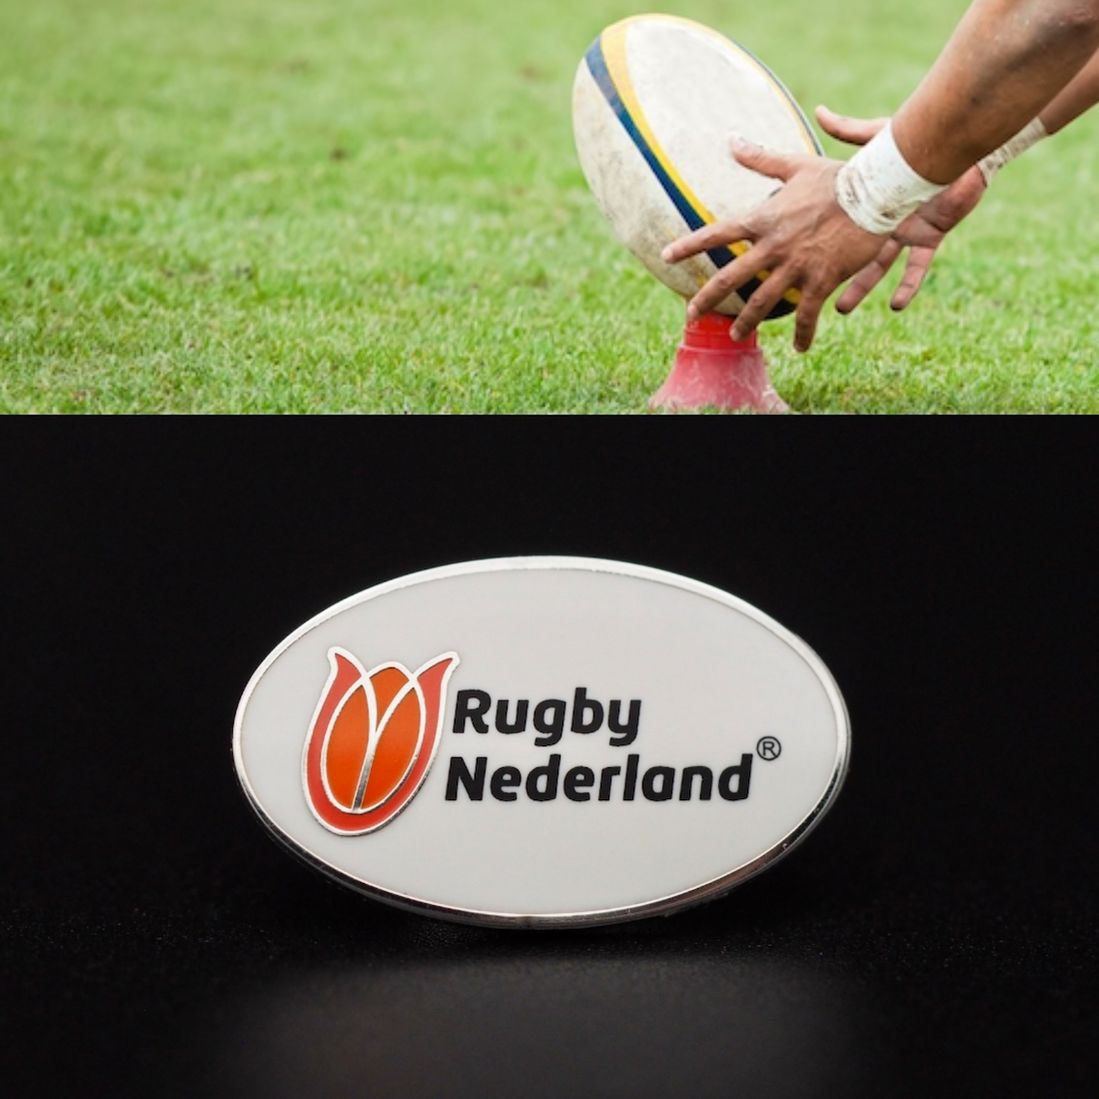 Rugby Nederland-Pins-pinspassion